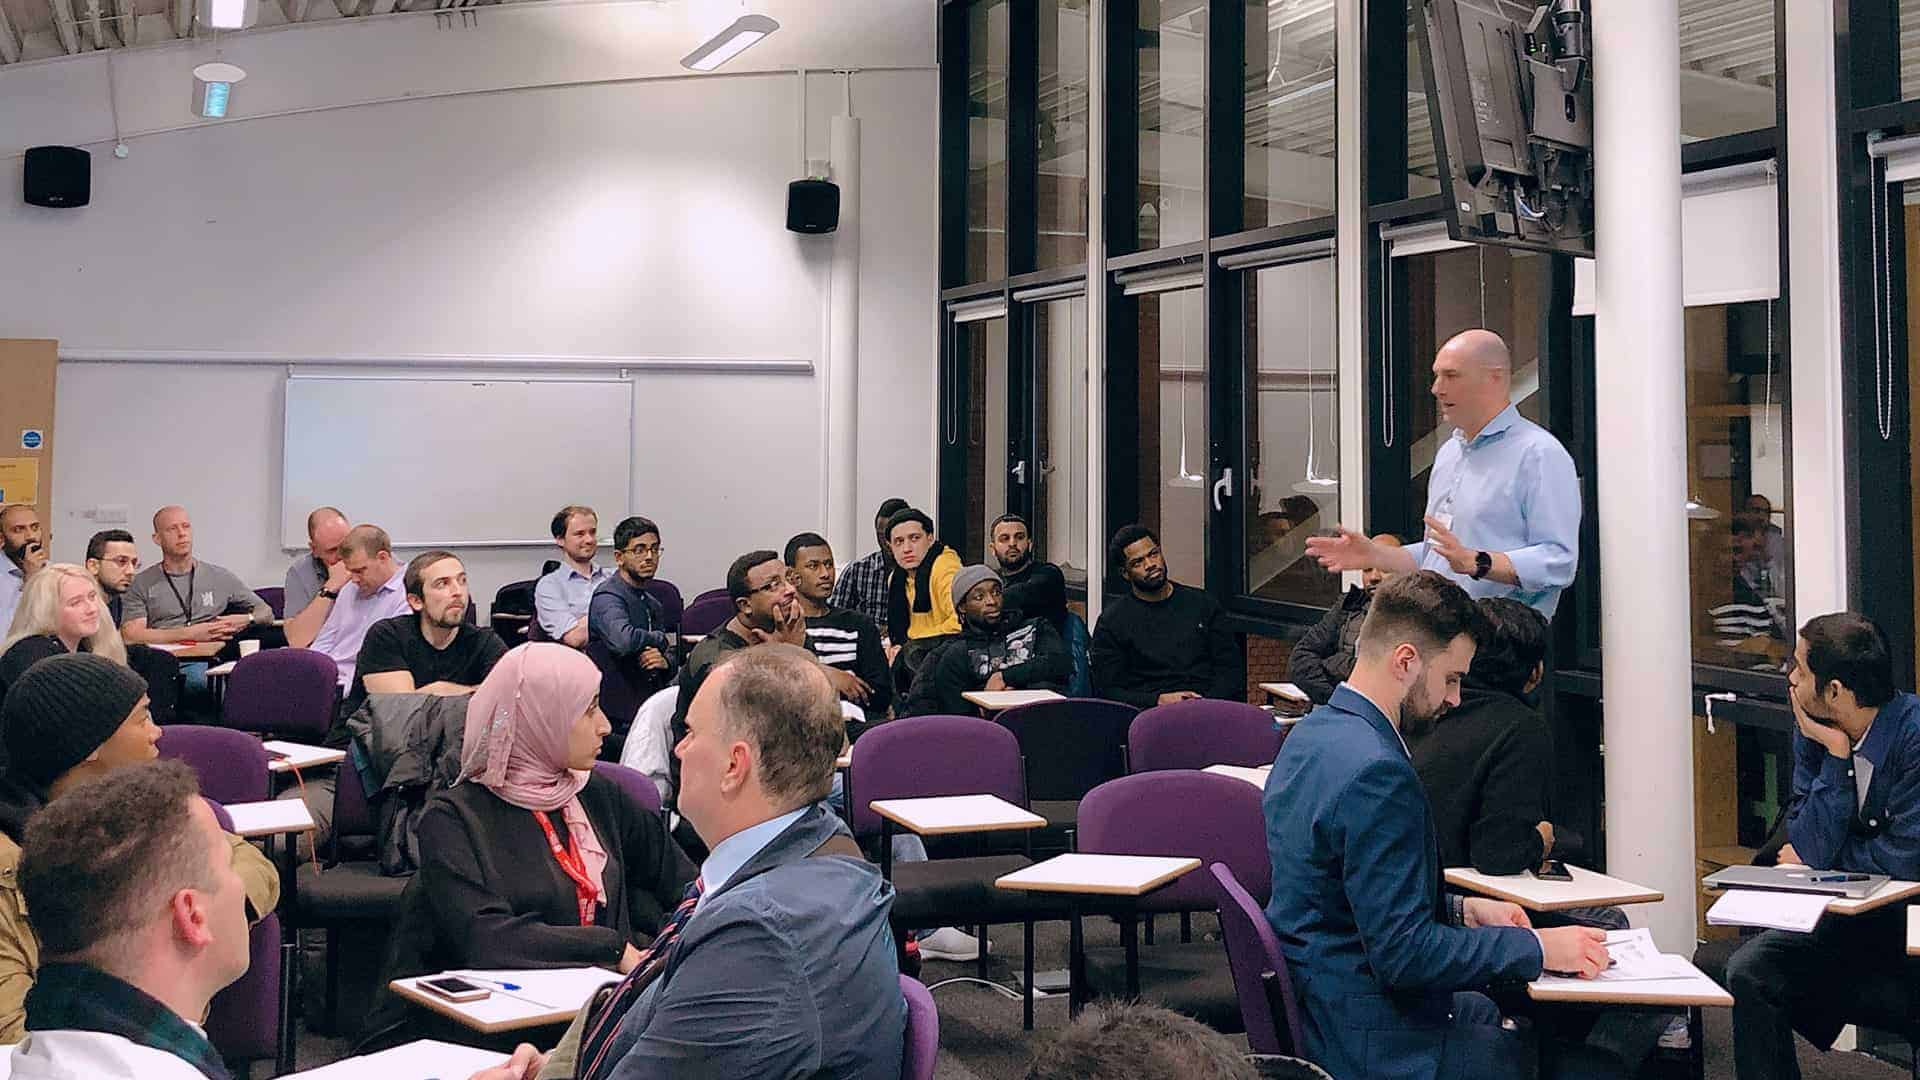 Mnp Stem Stephen Vernon Lsbu Employability Skills WorkshopMNP STEM Stephen Vernon LSBU Employability Skills Workshop, November 2019